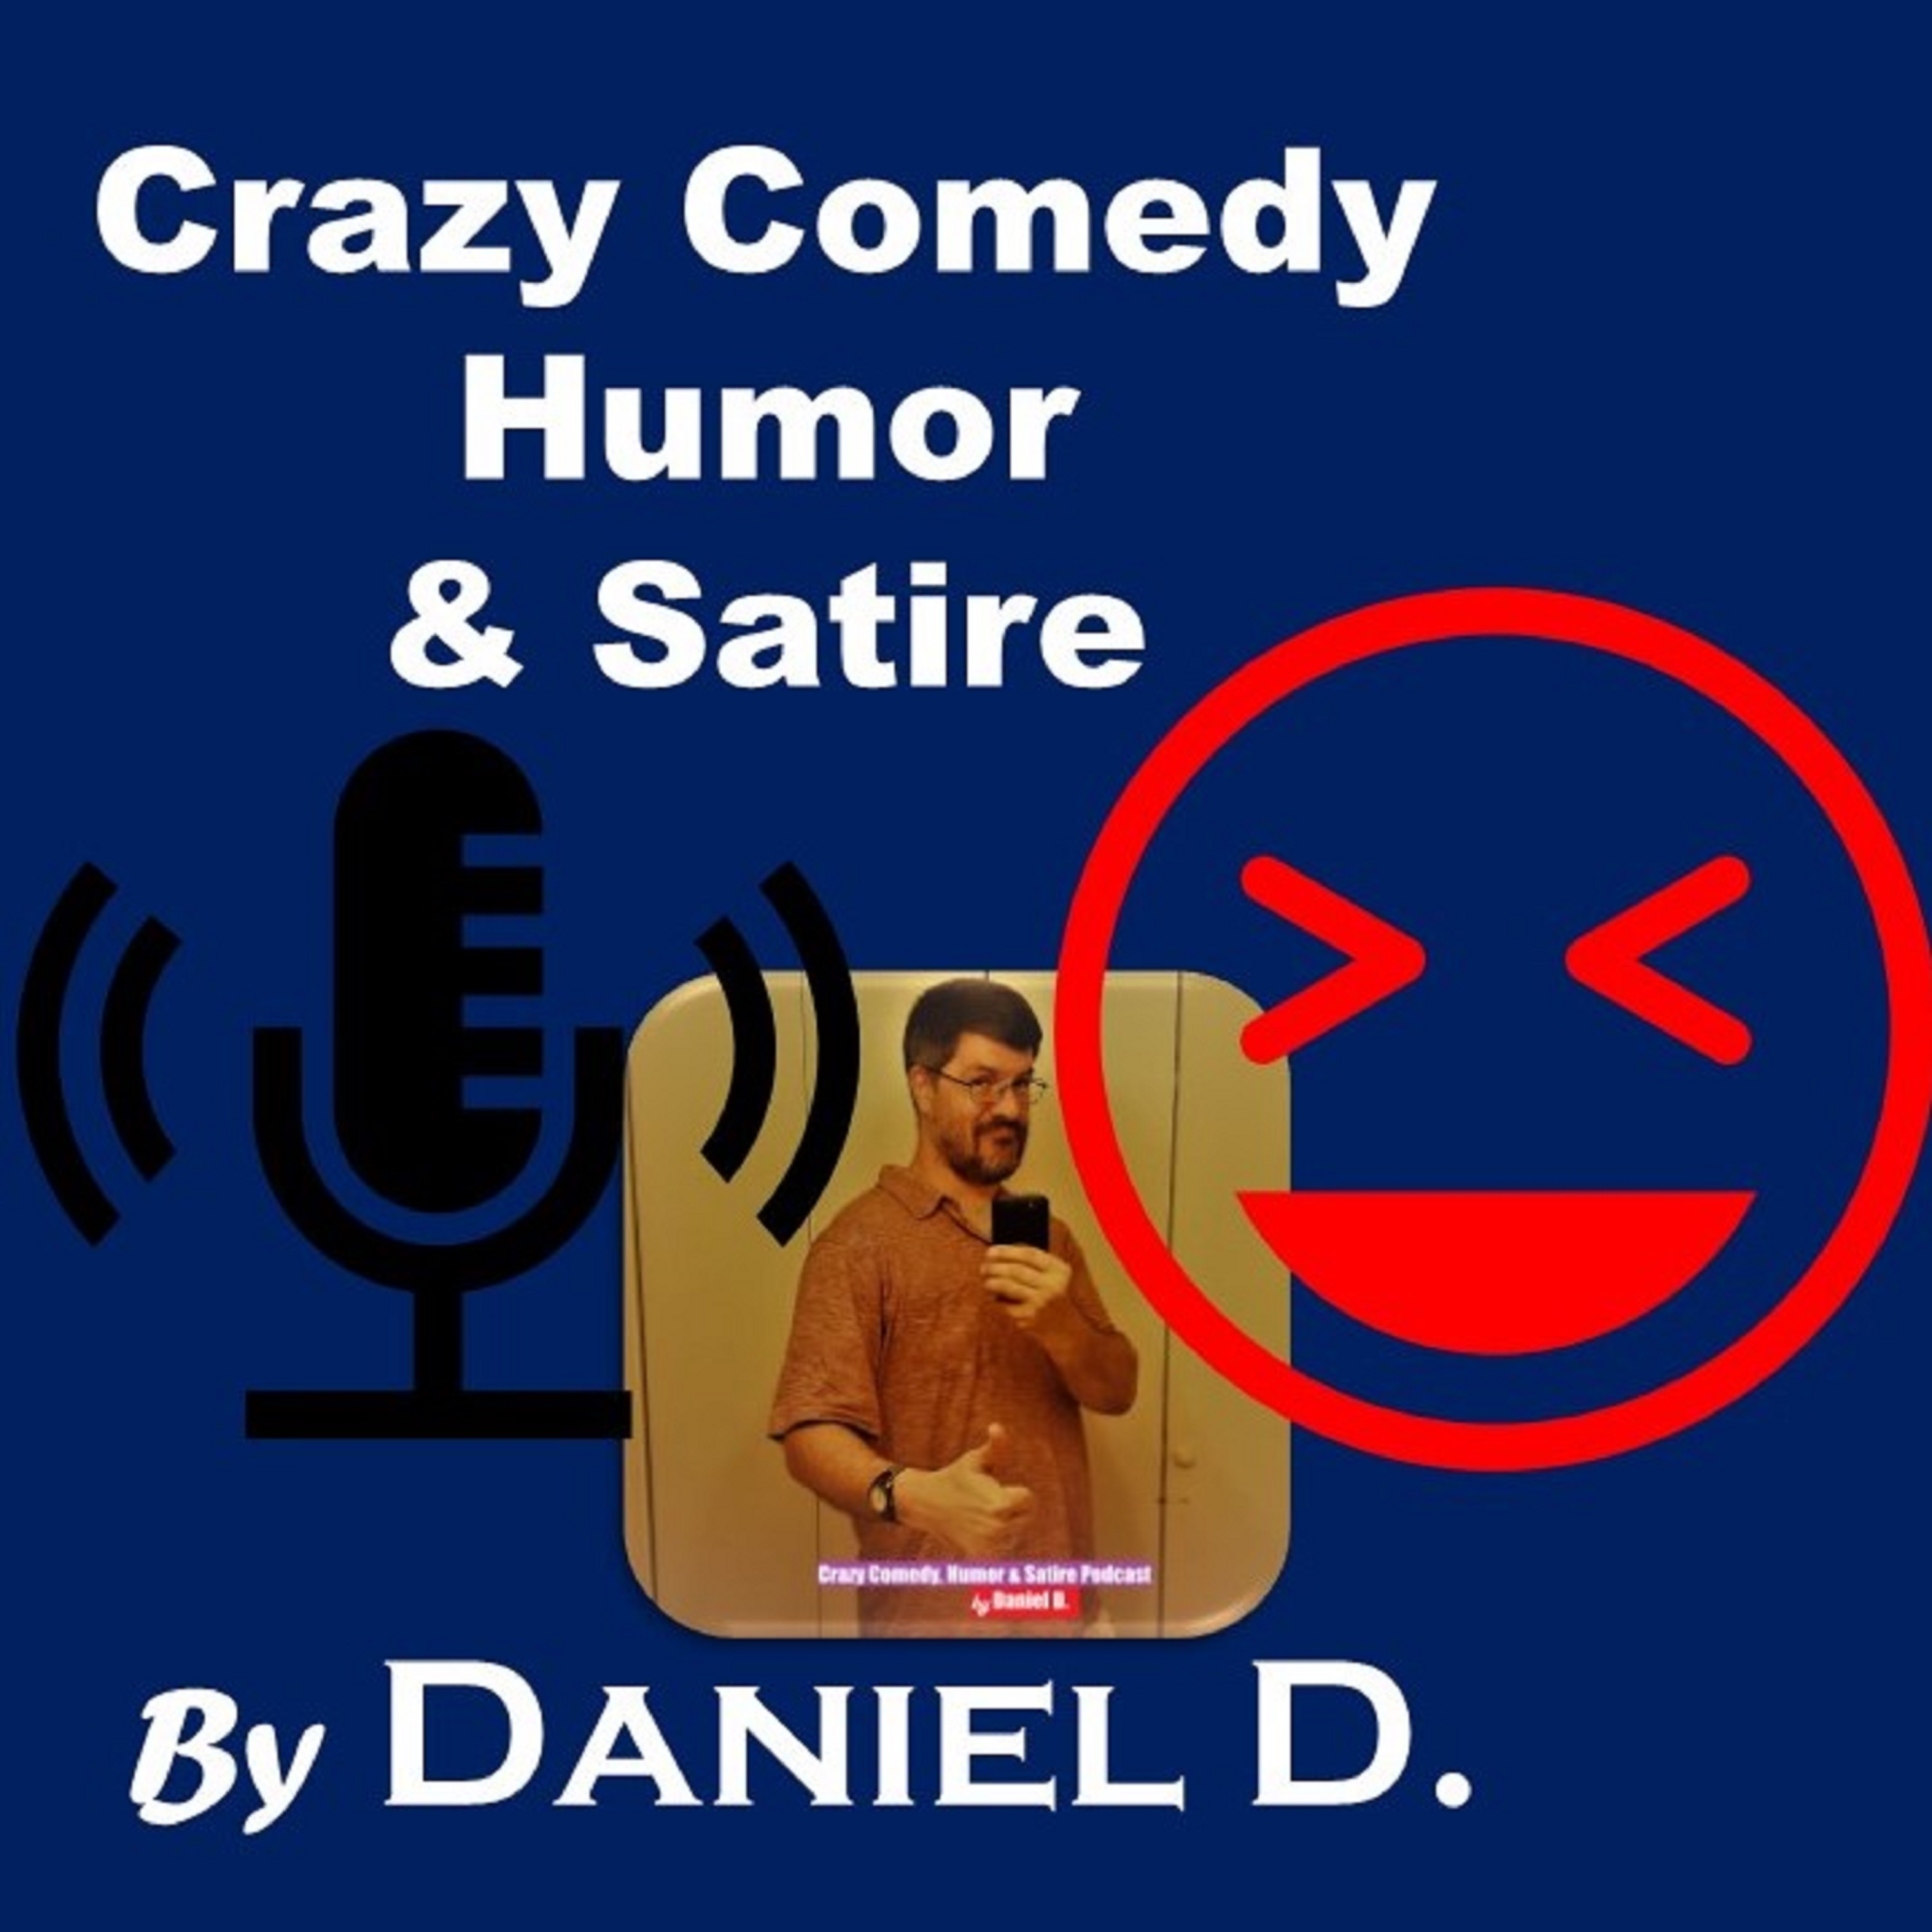 Artwork for Episode 28 of The Crazy Comedy, Humor & Satire Podcast